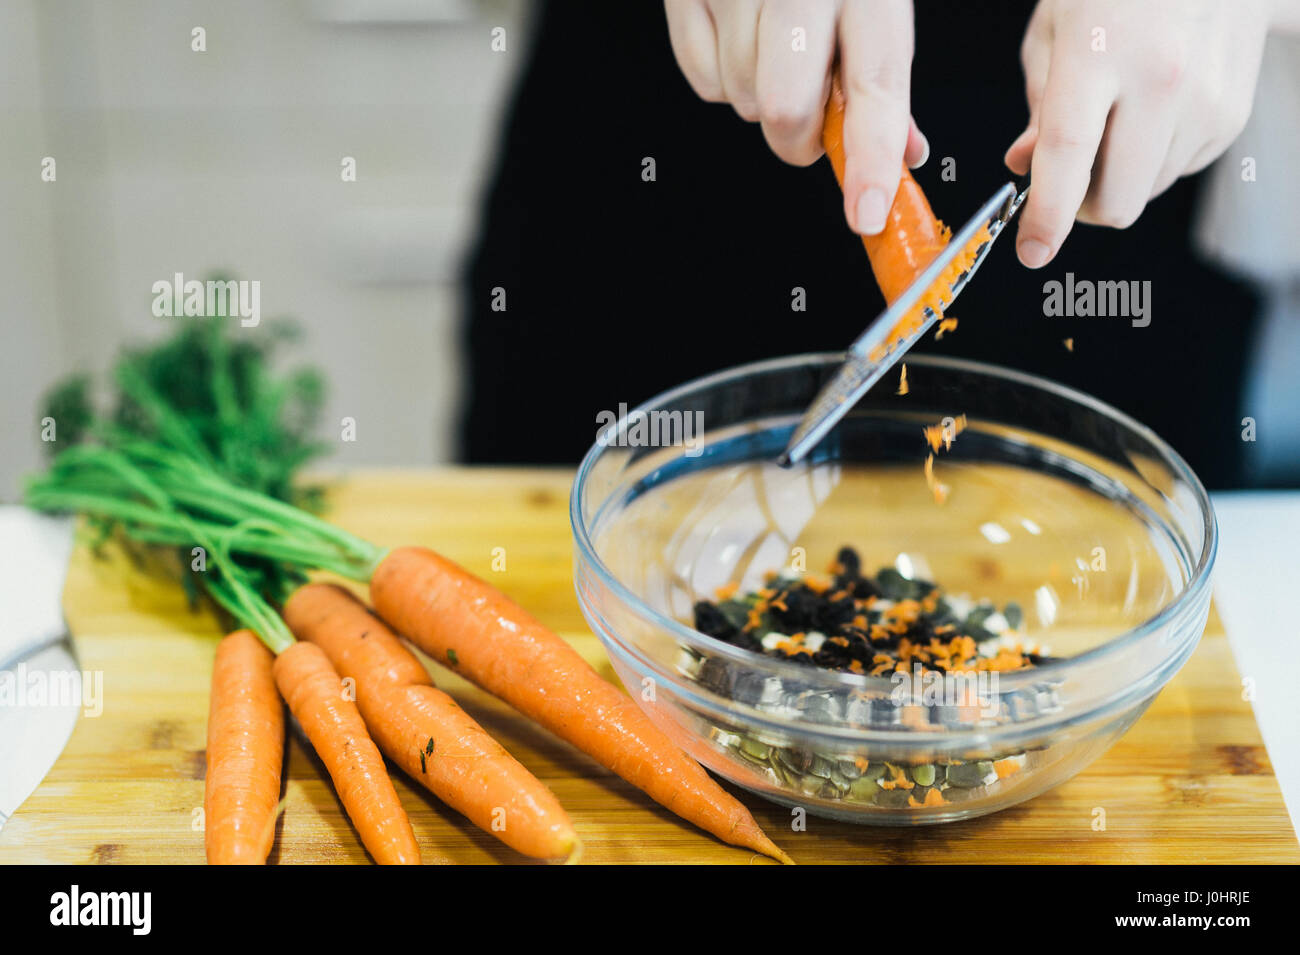 A Cook Grating Carrot to bake a Carrot Cake - Stock Image